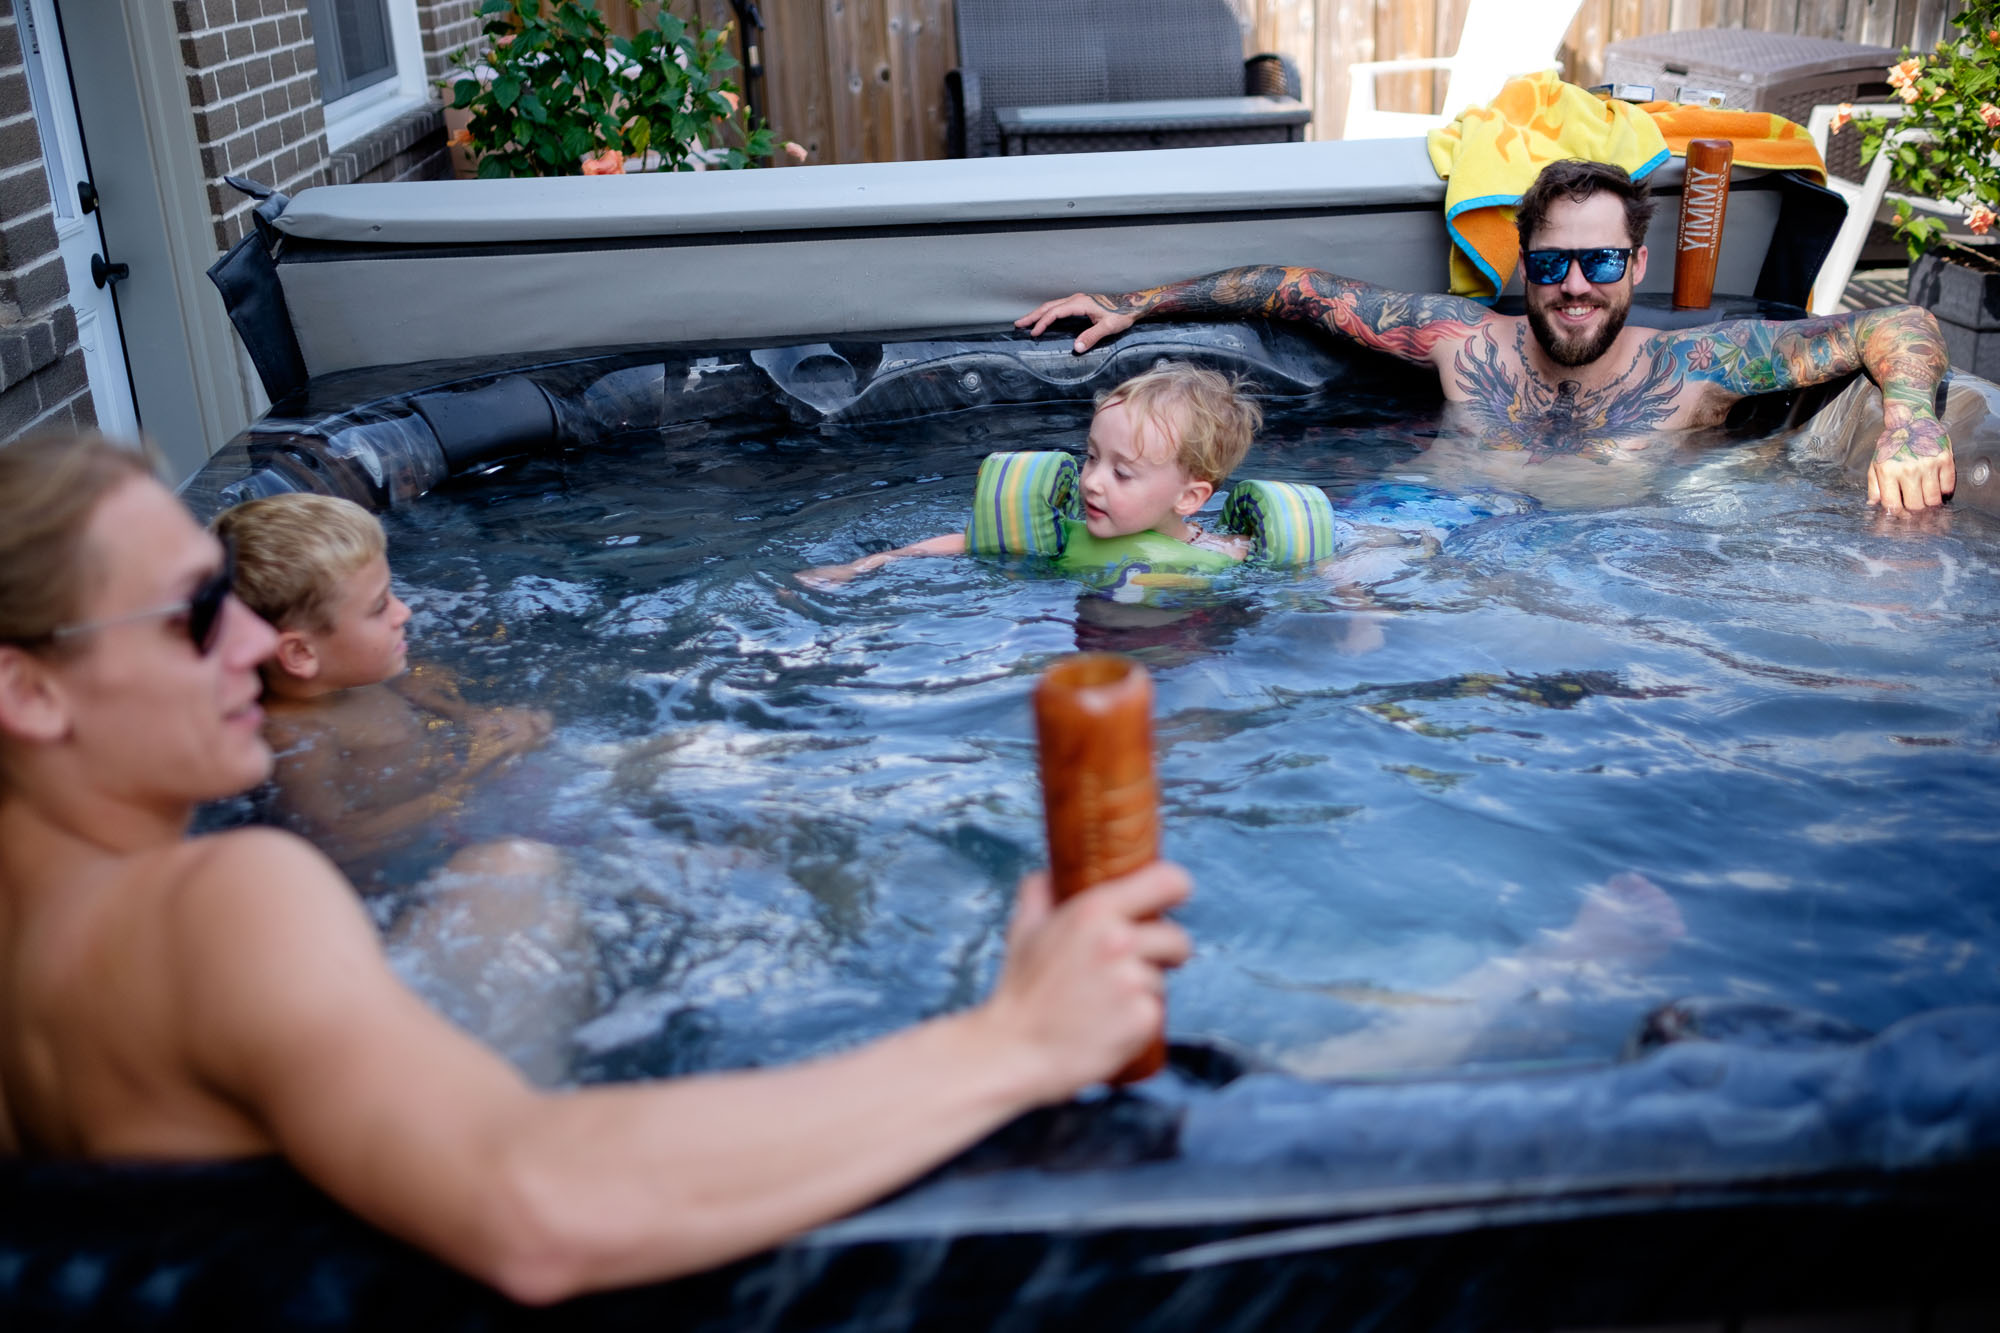 The groom relaxes in a hot tub before his backyard wedding in Ontario, Canada.